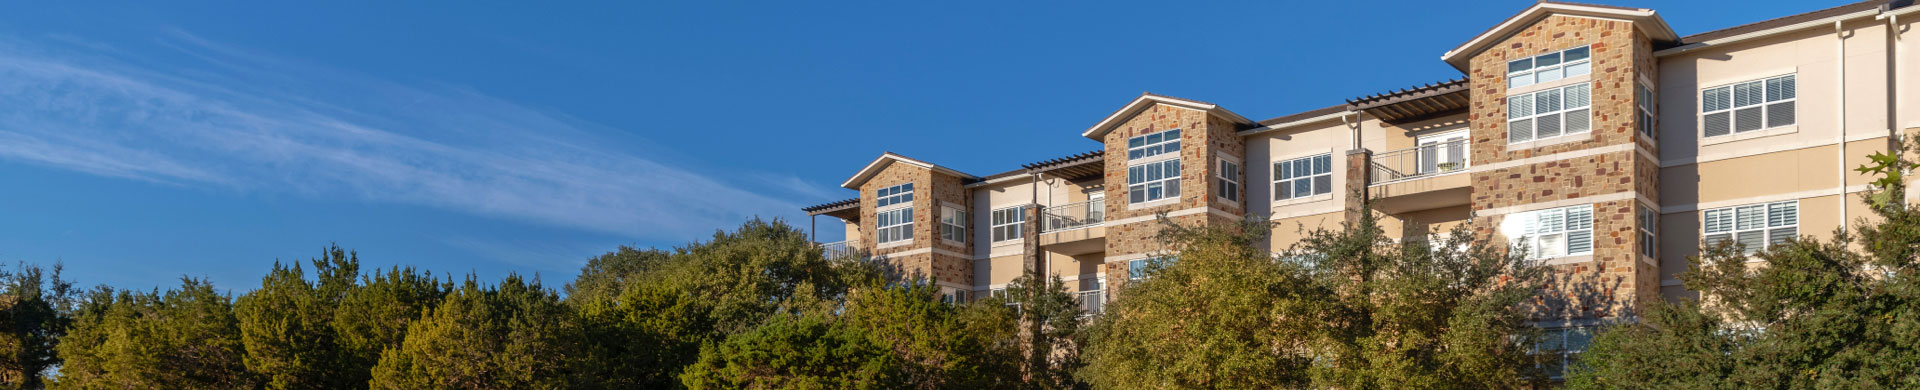 Exterior View of Apartments at Longhorn Village